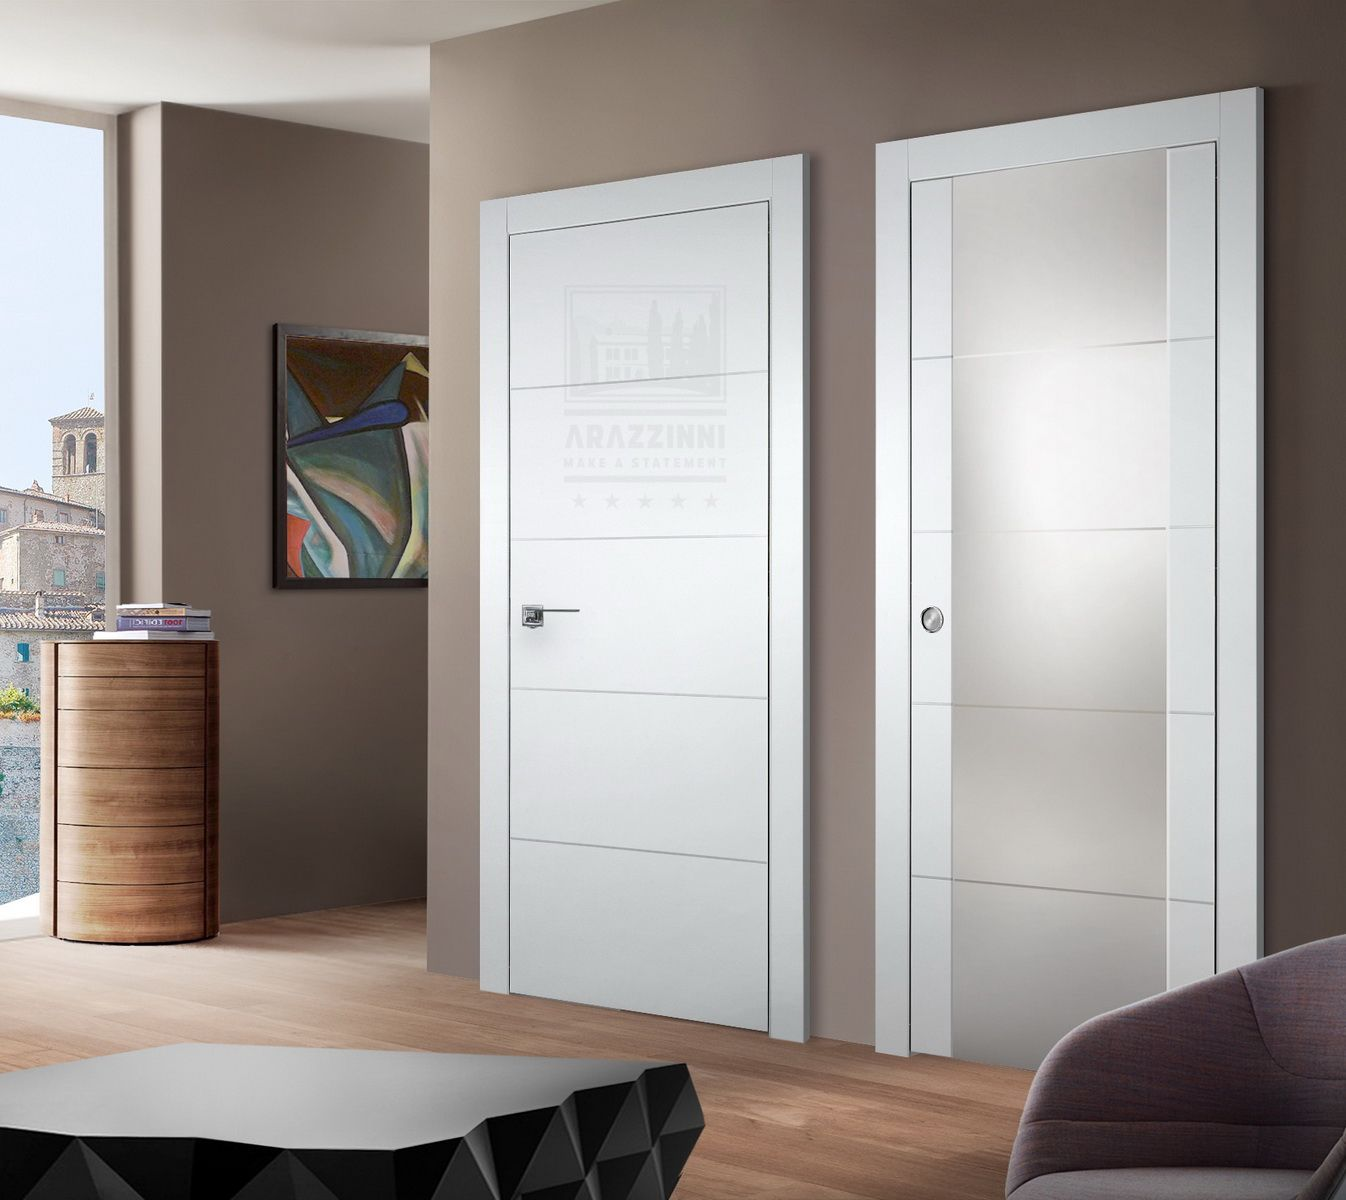 Elegant Arazzinni SmartPro Modern Interior Doors   Doors And Beyond   Beautiful  Doors   And Damian Knows